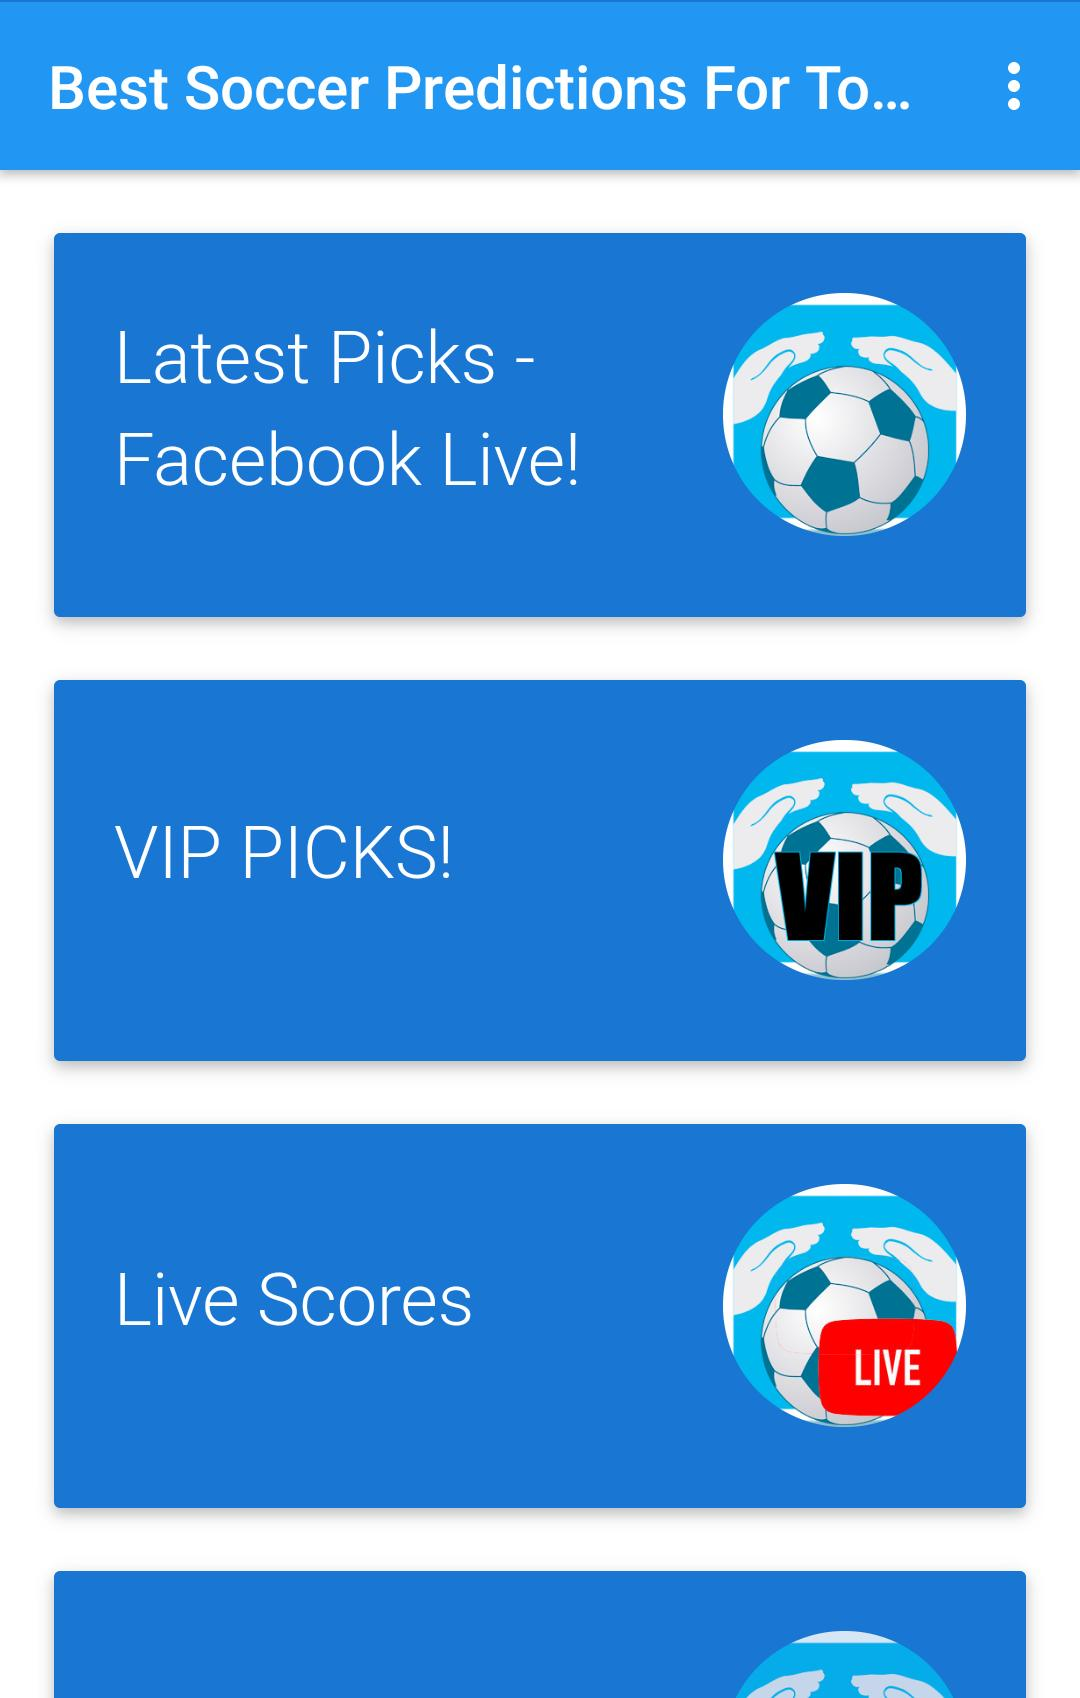 Best Soccer Predictions For Today for Android - APK Download